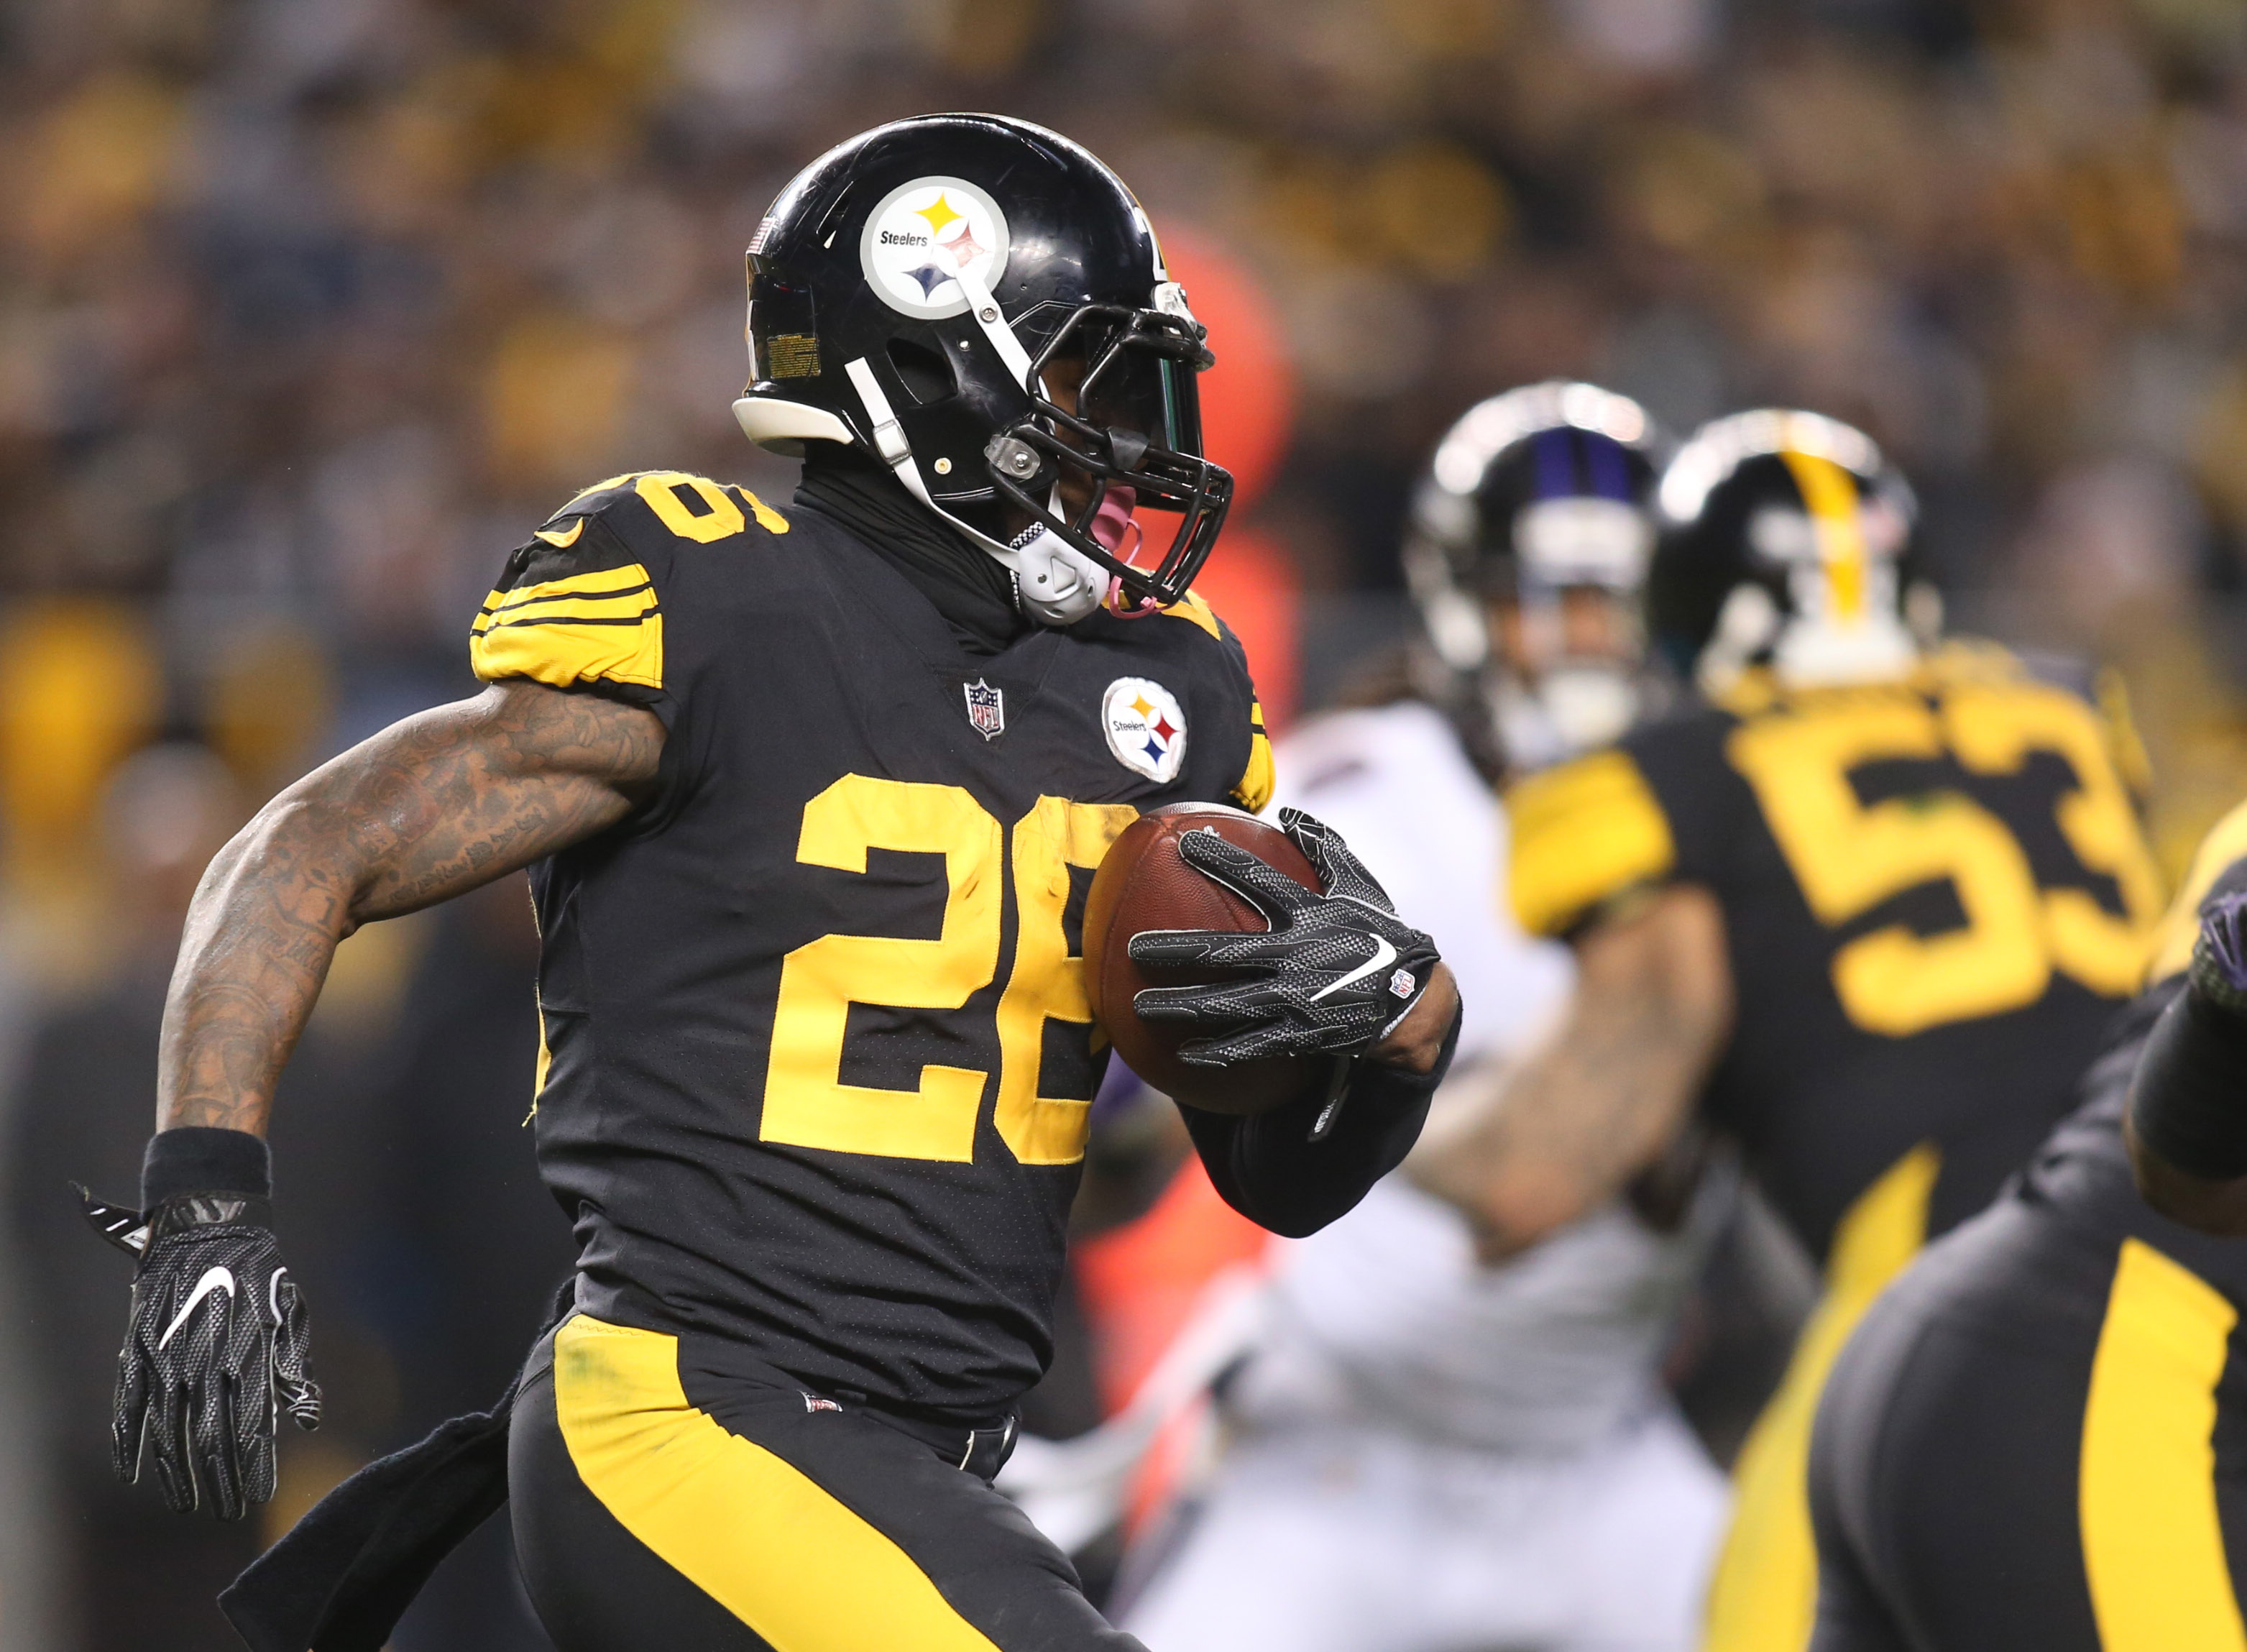 Odell beckham jr leveon bell wonder if theyd get fined for same celebration as ezekiel elliott dallas news - Dec 25 2016 Pittsburgh Pa Usa Pittsburgh Steelers Running Back Le Veon Bell 26 Rushes The Ball Against The Baltimore Ravens During The Second Quarter